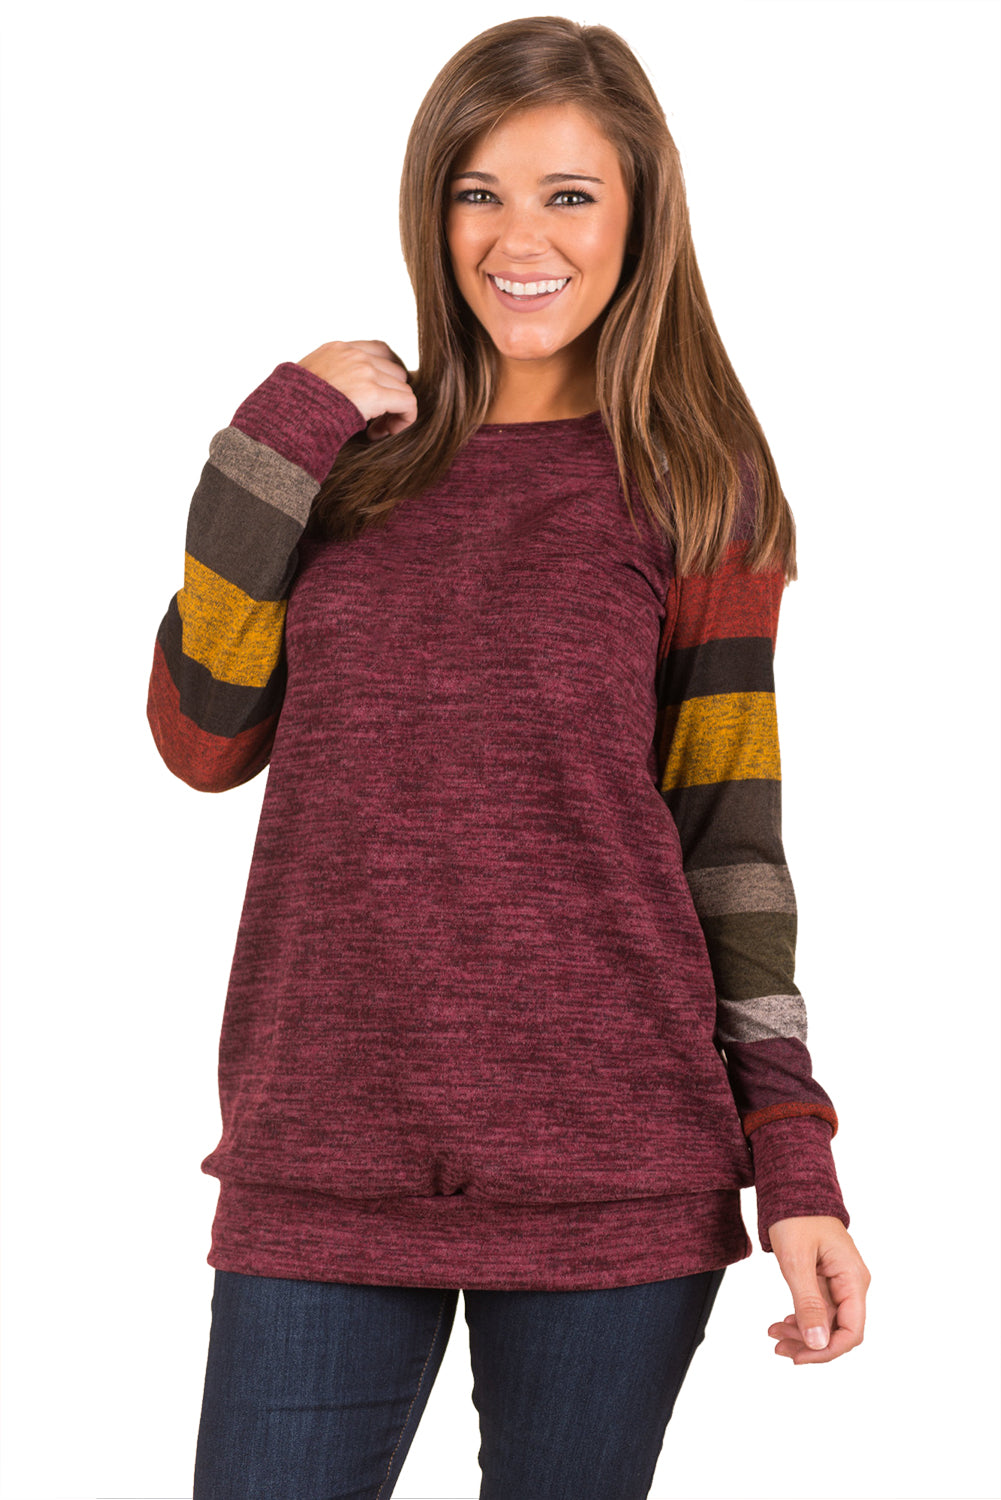 Chicloth Multicolor Long Sleeve Heathered Magenta Sweatshirt - L / Magenta